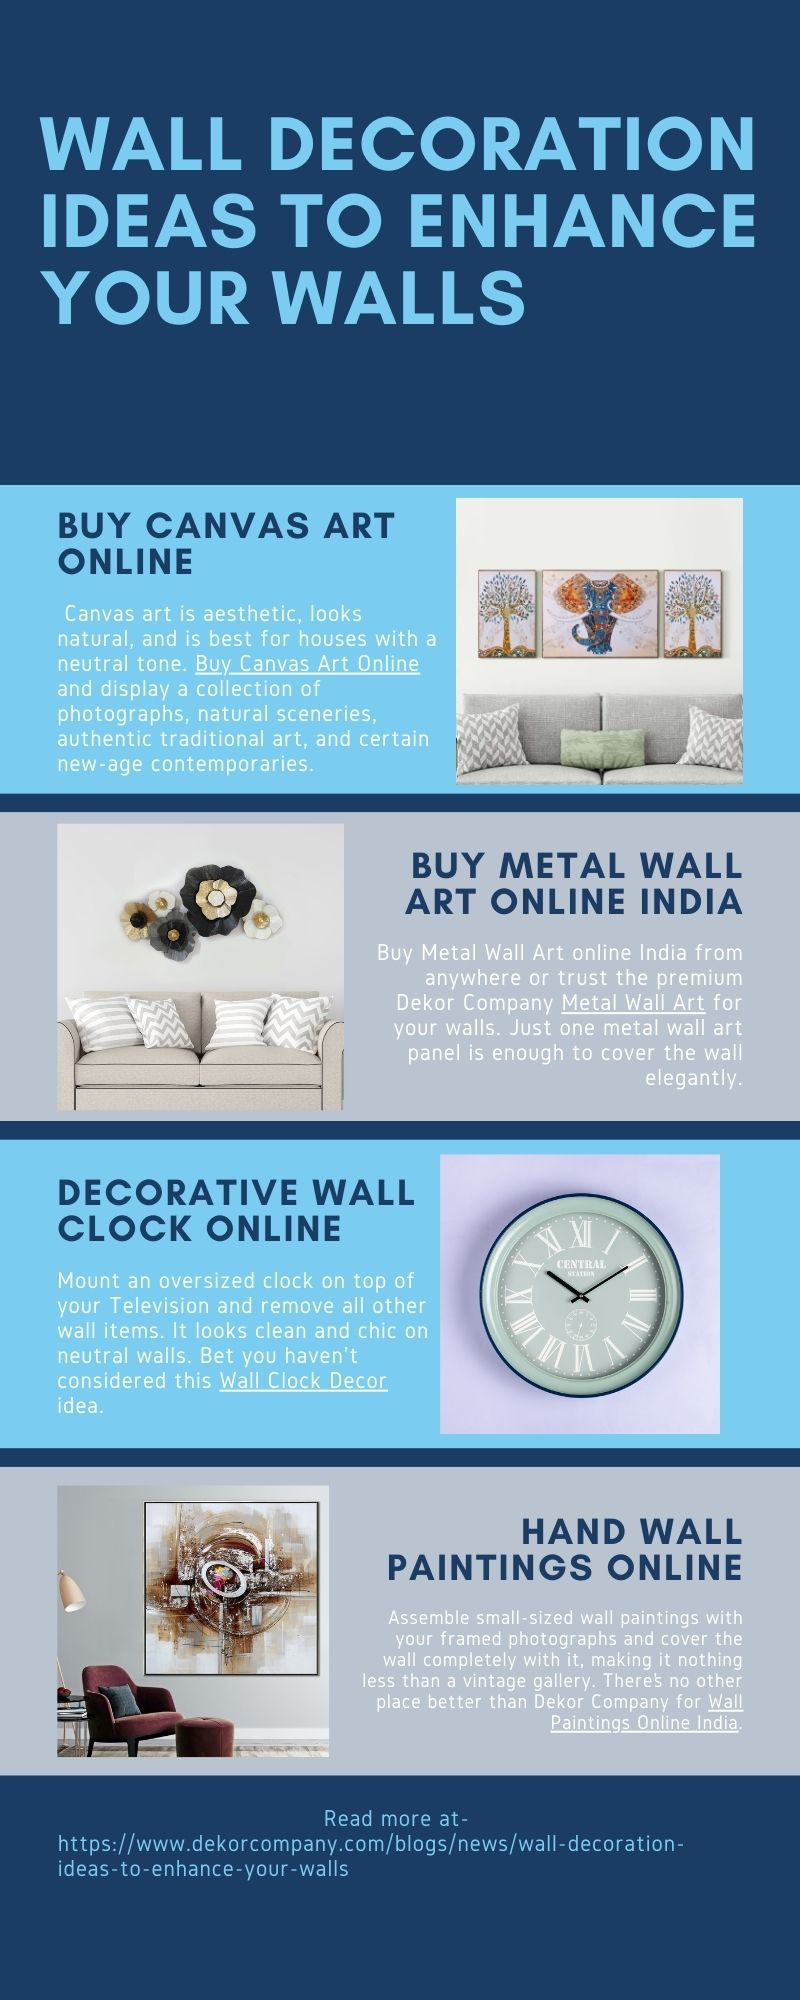 Top Wall Decoration Ideas to Enhance Your Walls